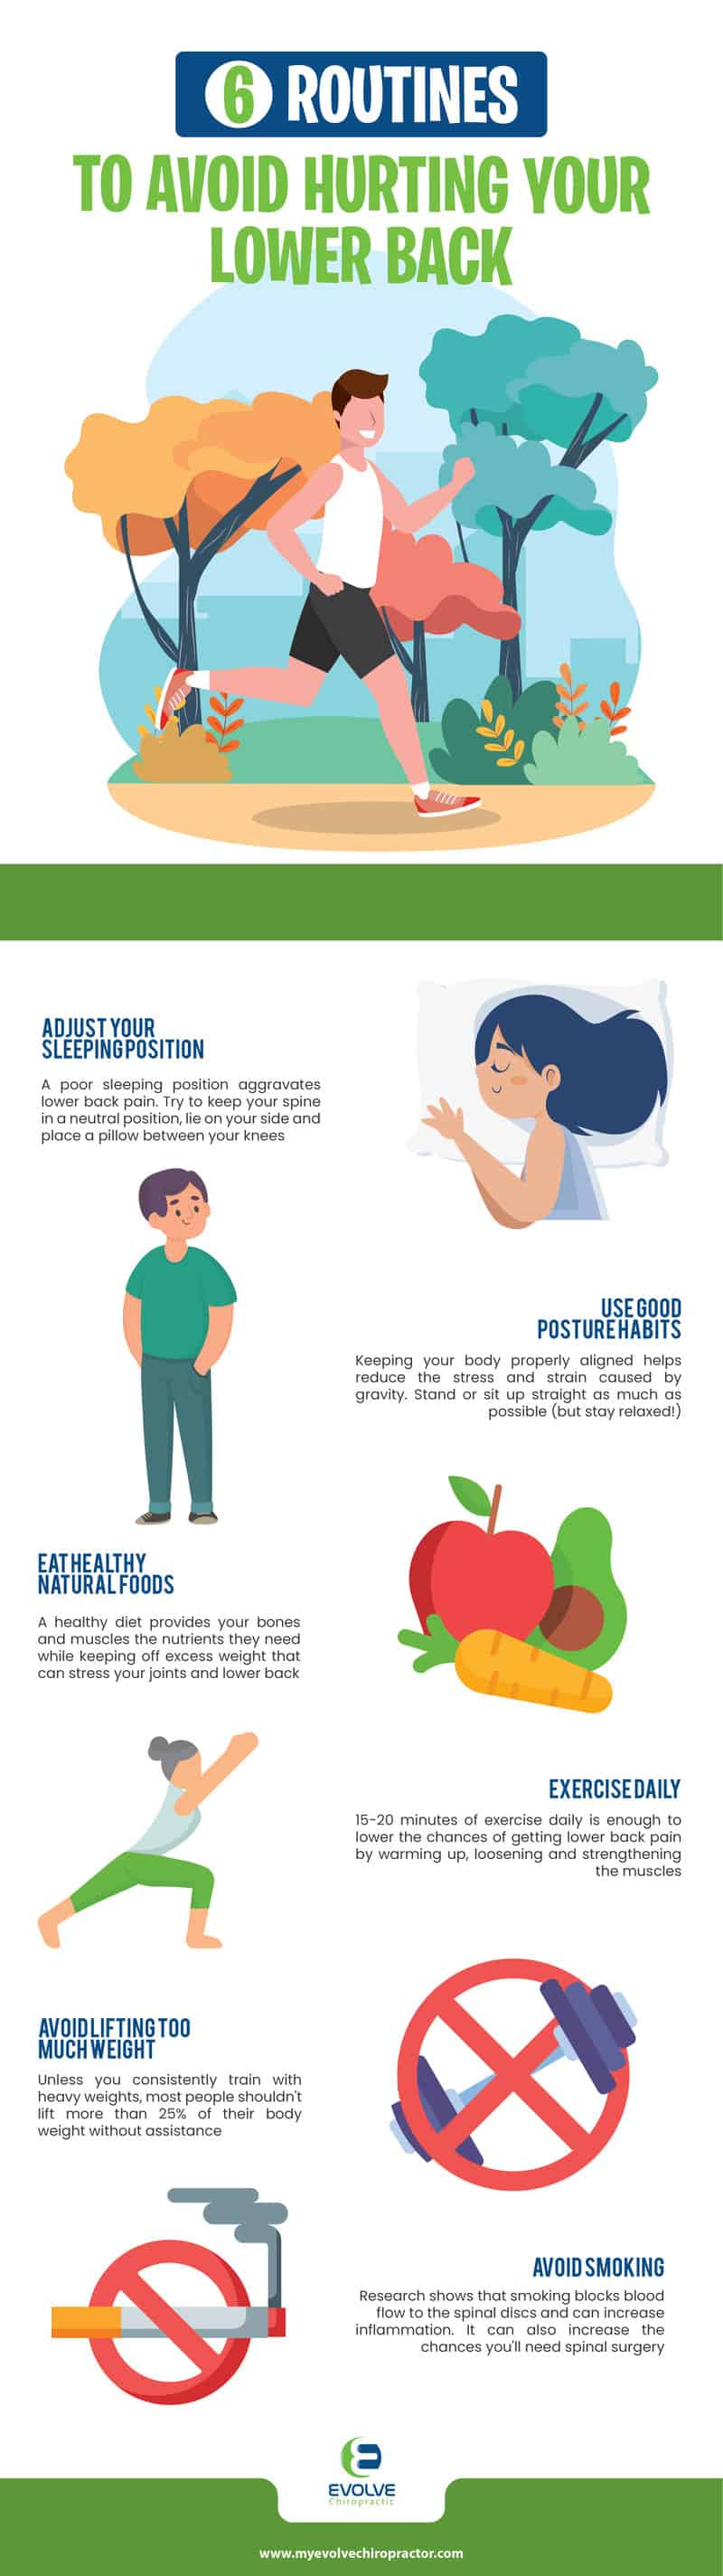 6 daily routines to prevent low back pain infographic